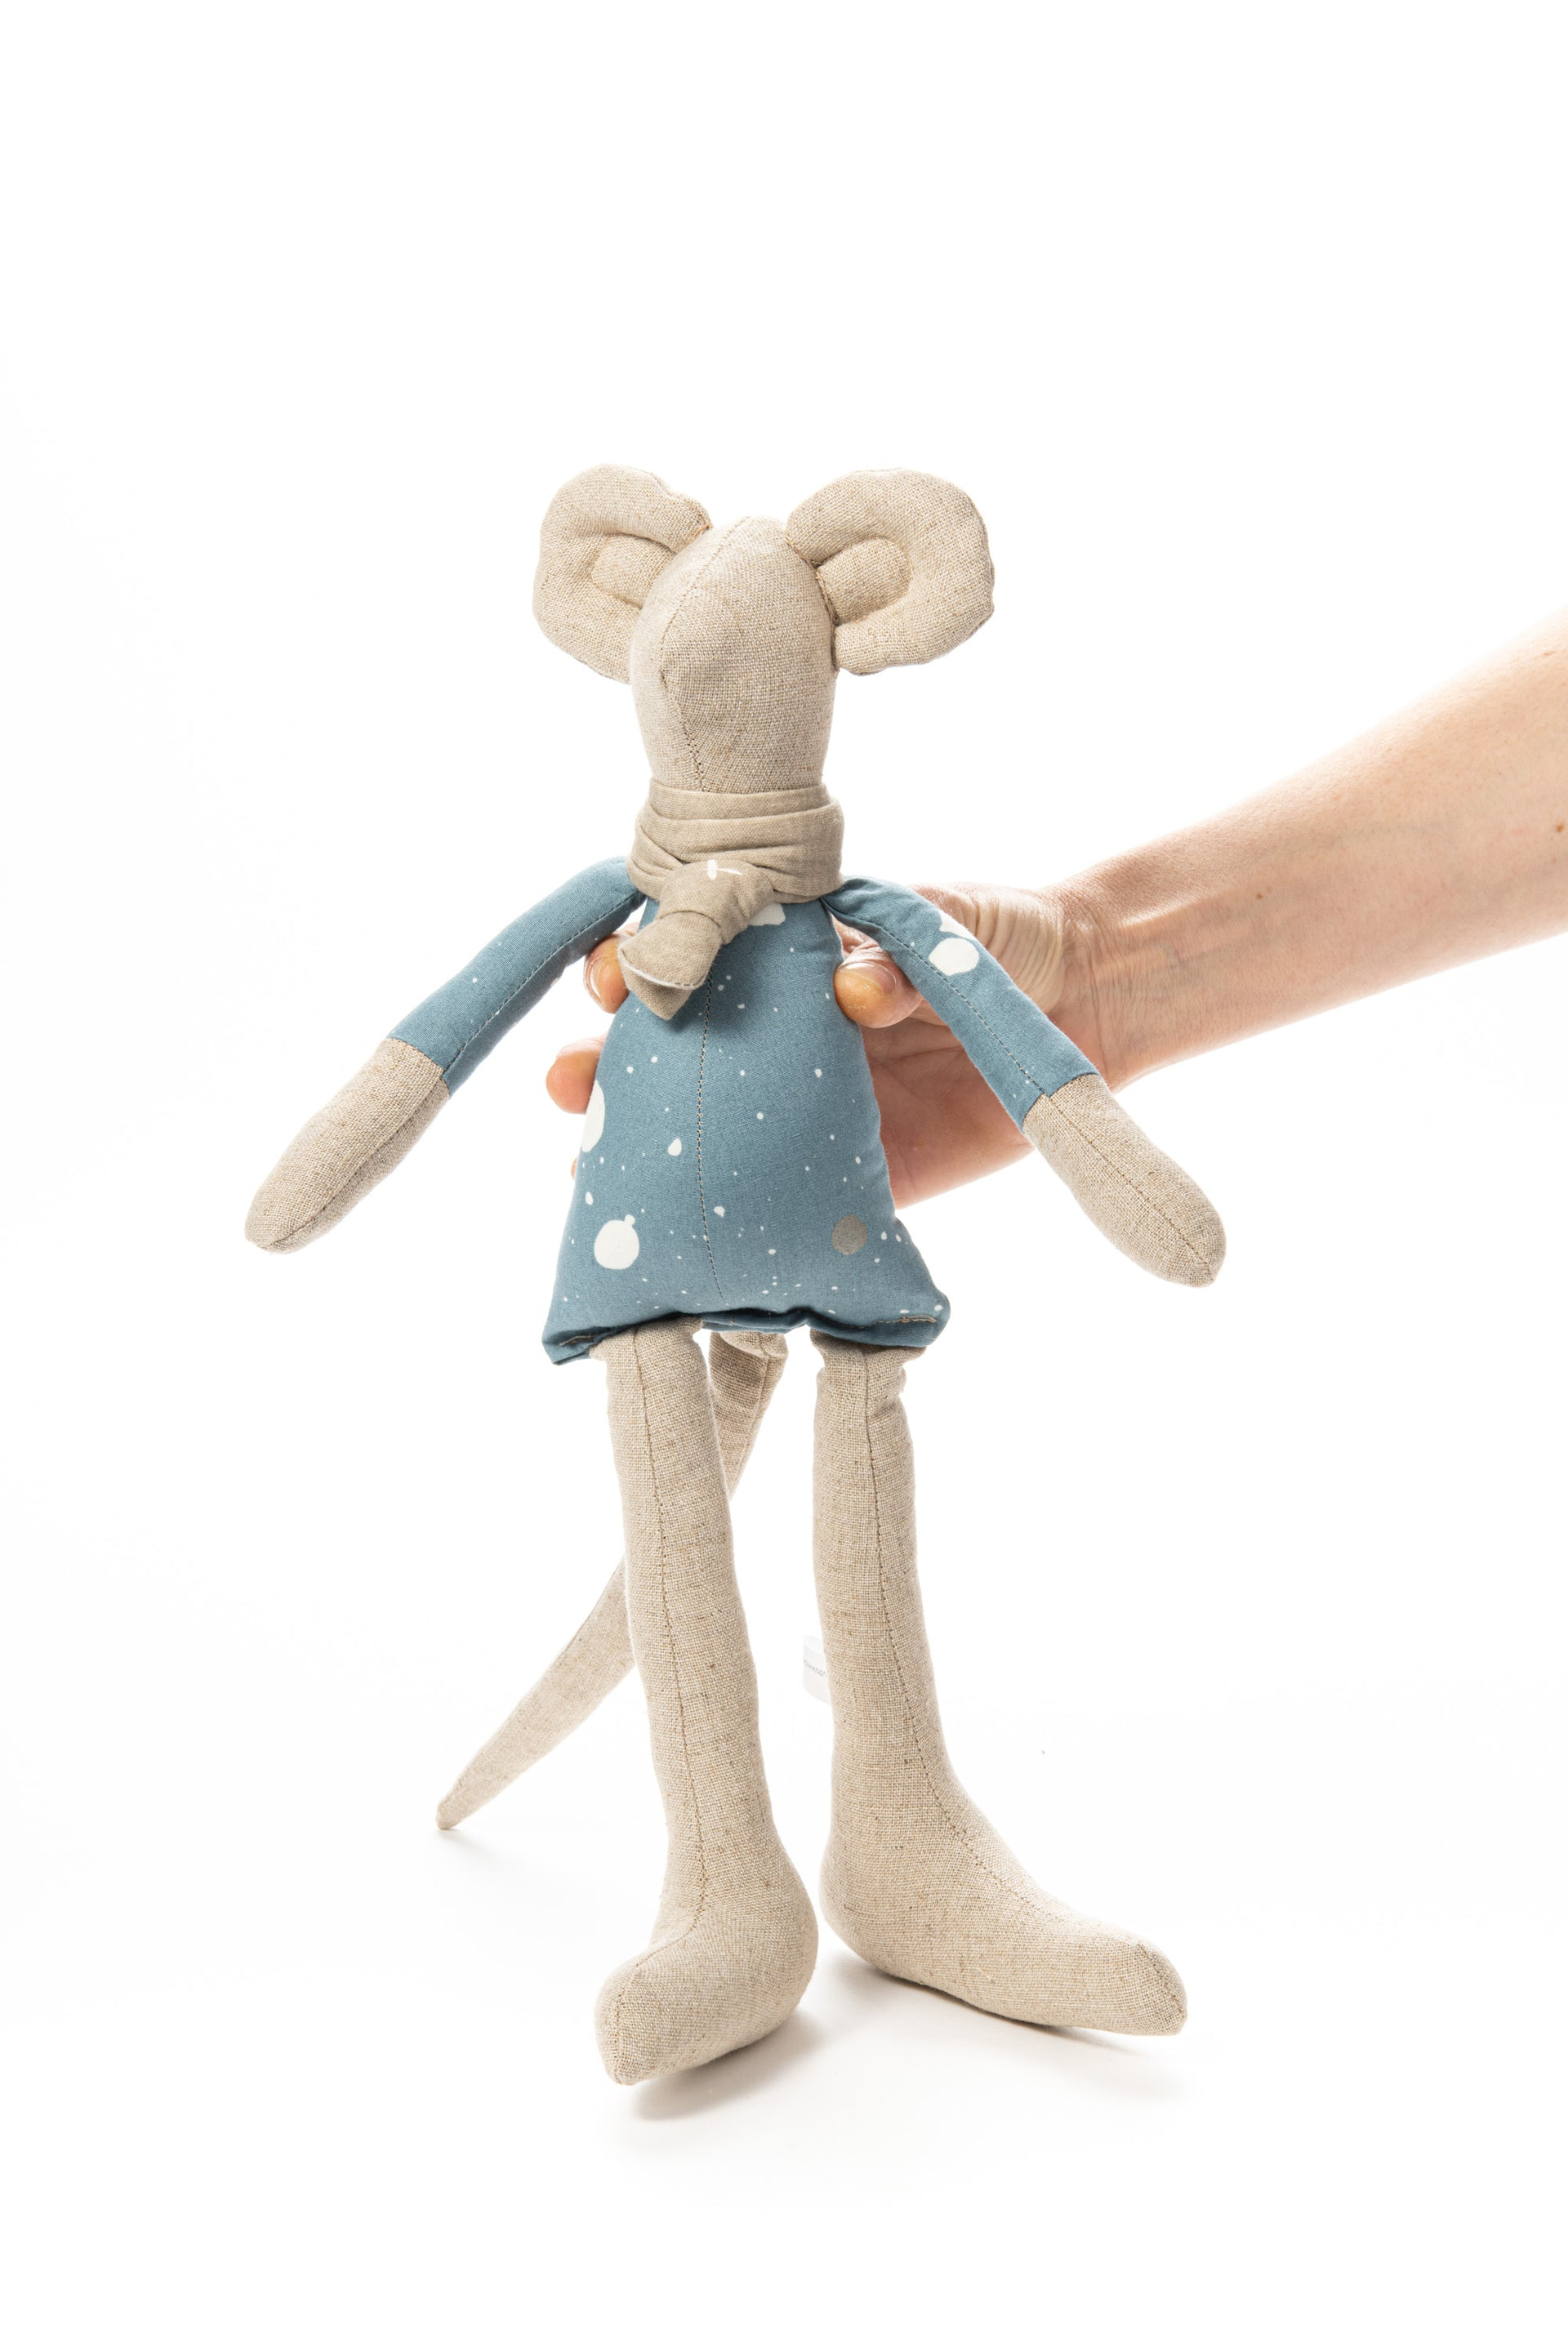 Soft sculpture, Handmade gift, Mouse doll, Doll toy, Stuffed animal toy, Home decor toy, Handmade mouse, Fabric doll, Soft toy, Art doll